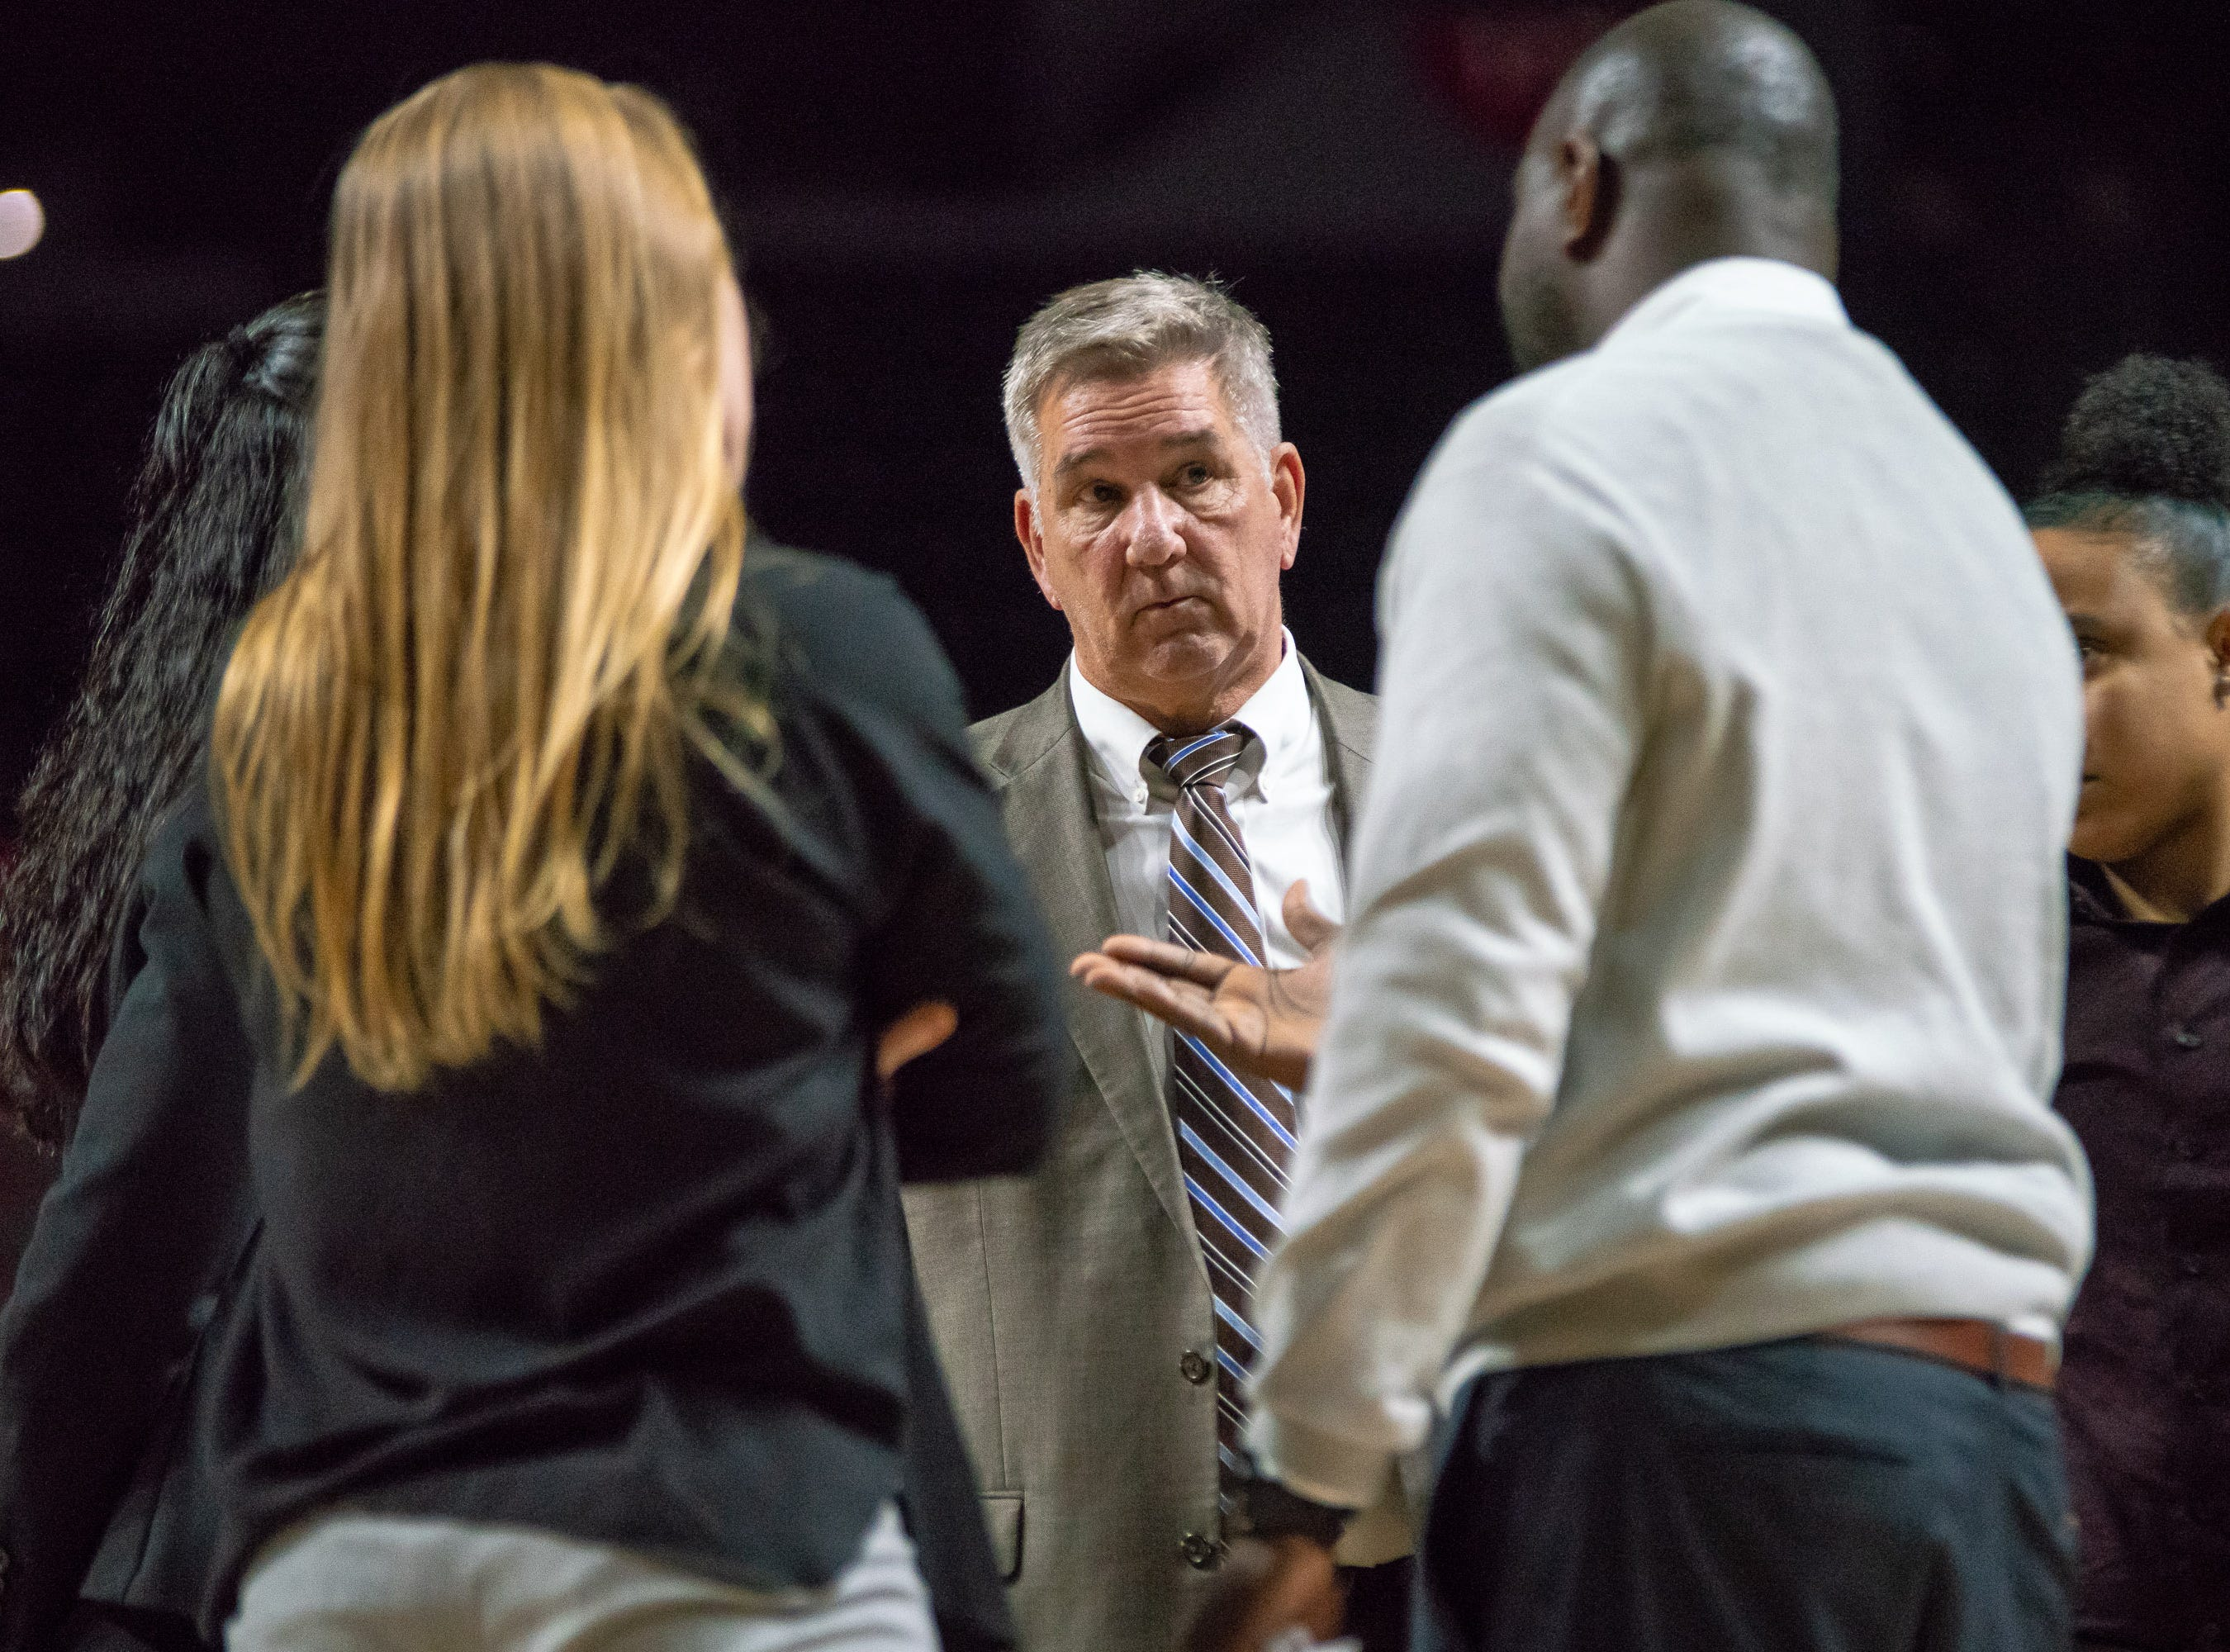 UL's head coach Garry Brodhead talks to his coaches during a time-out as the Ragin' Cajuns play against the Georgia State Panthers at the Cajundome on January 10, 2019.